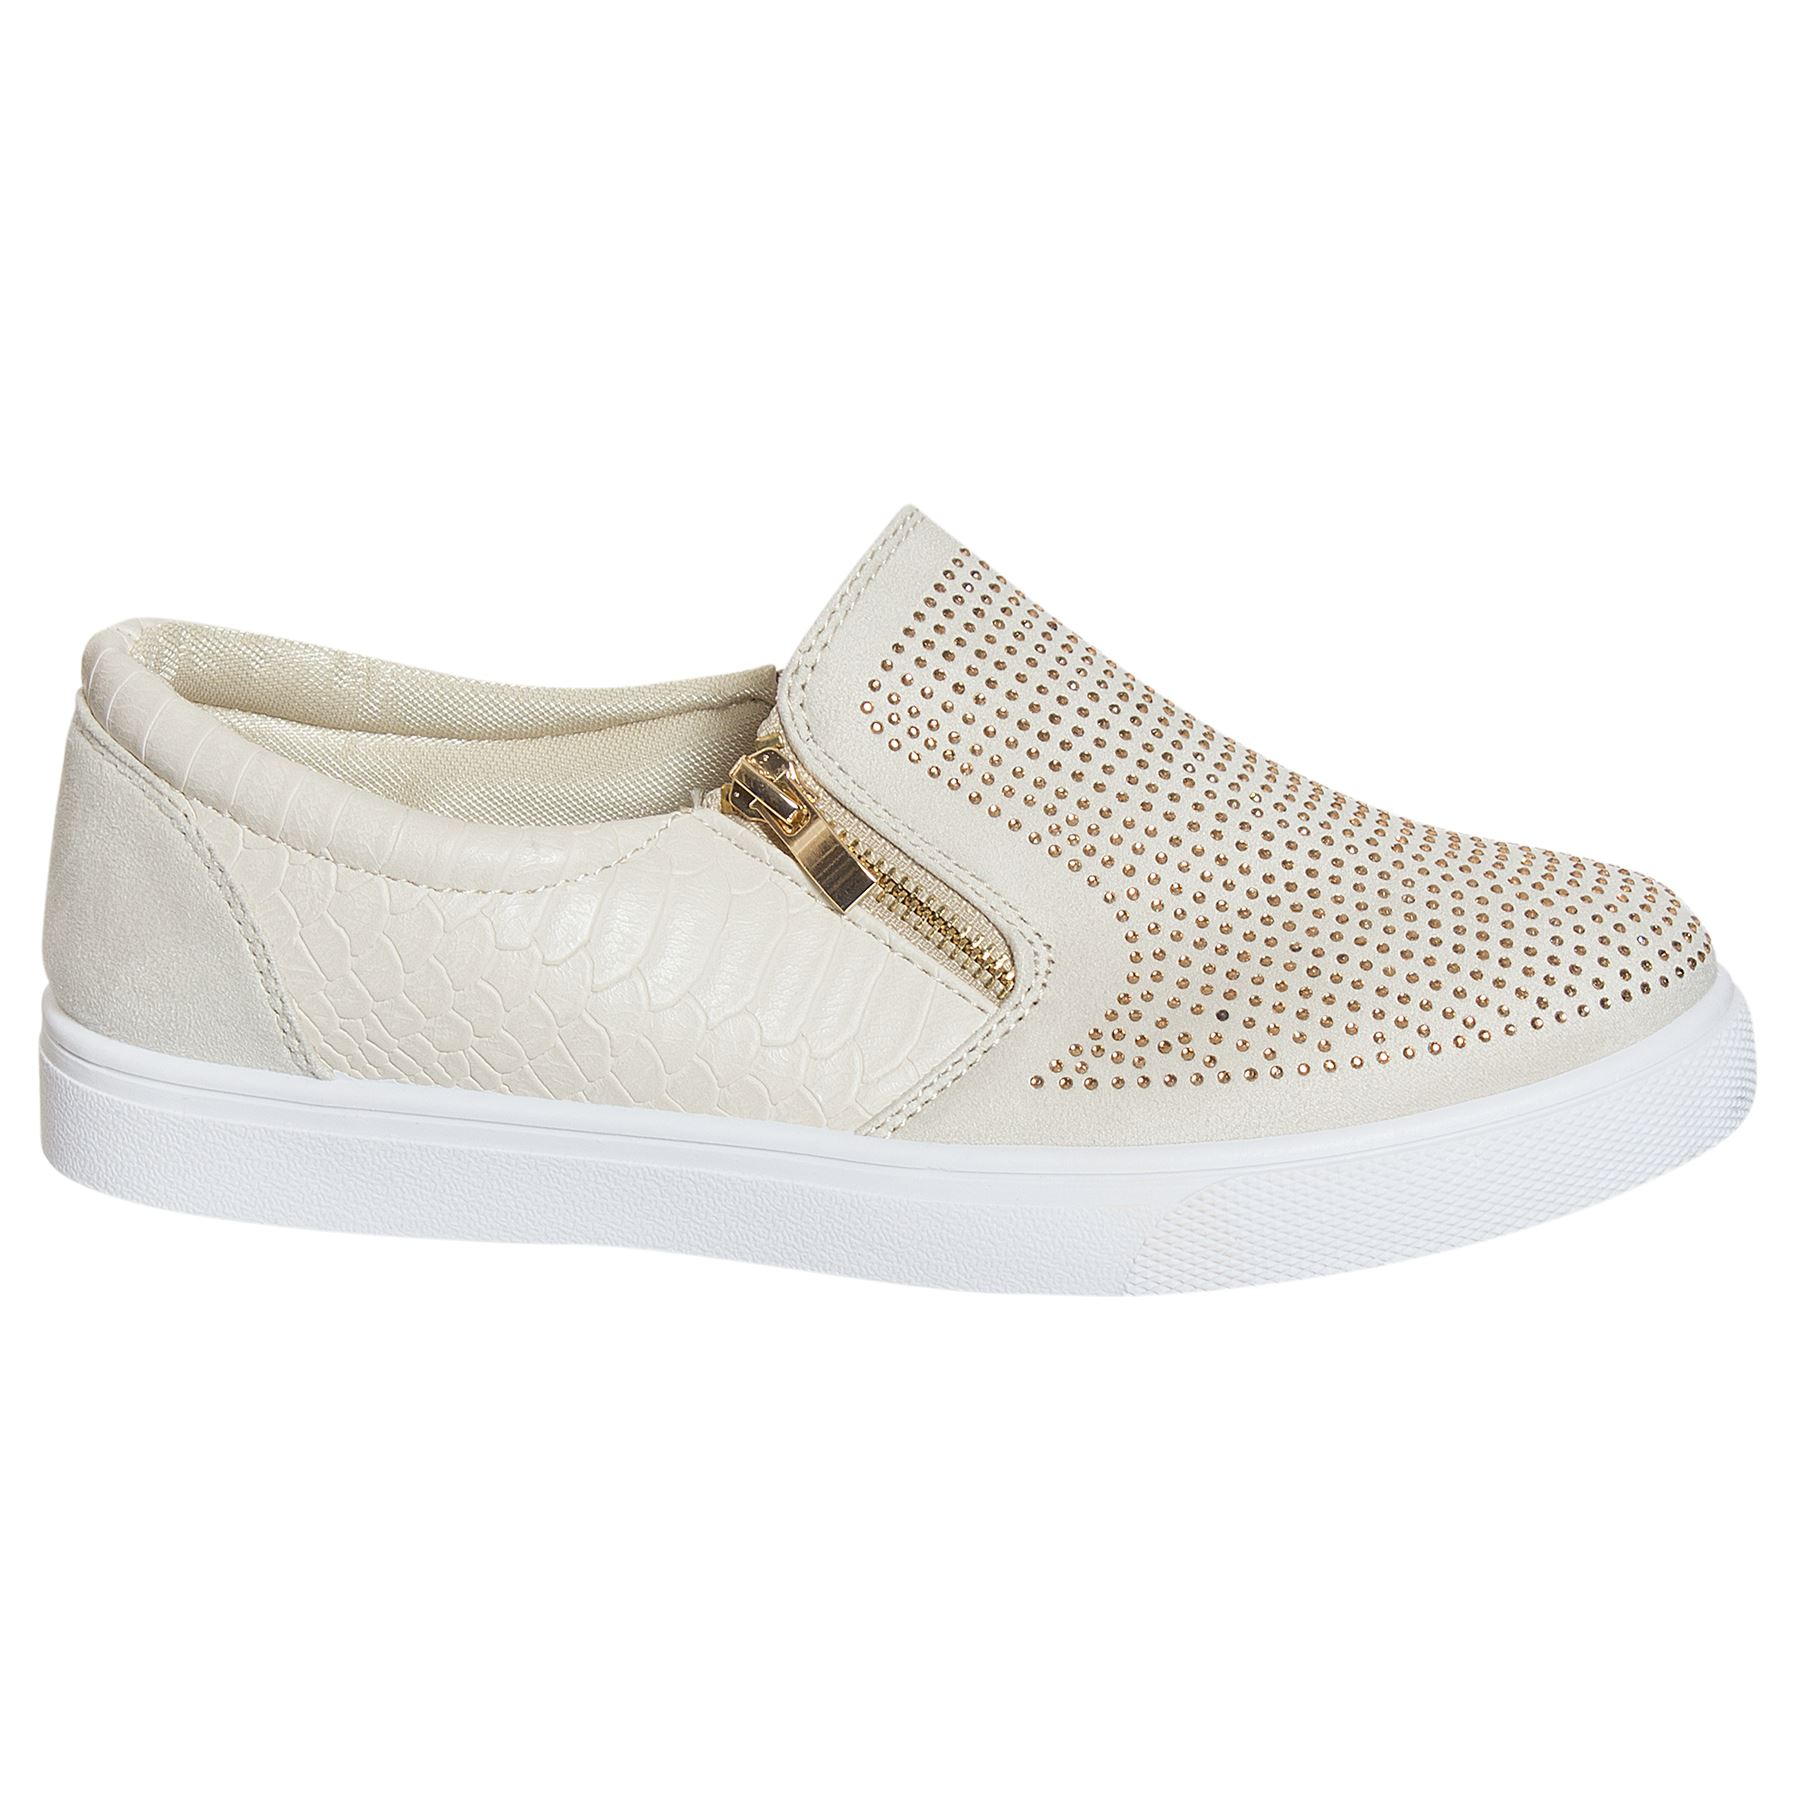 Ladies Skater Shoes Croc Style Zip Flat Slip On Womens Plimsolls Sneakers Trainers Pumps Loafer UO_2